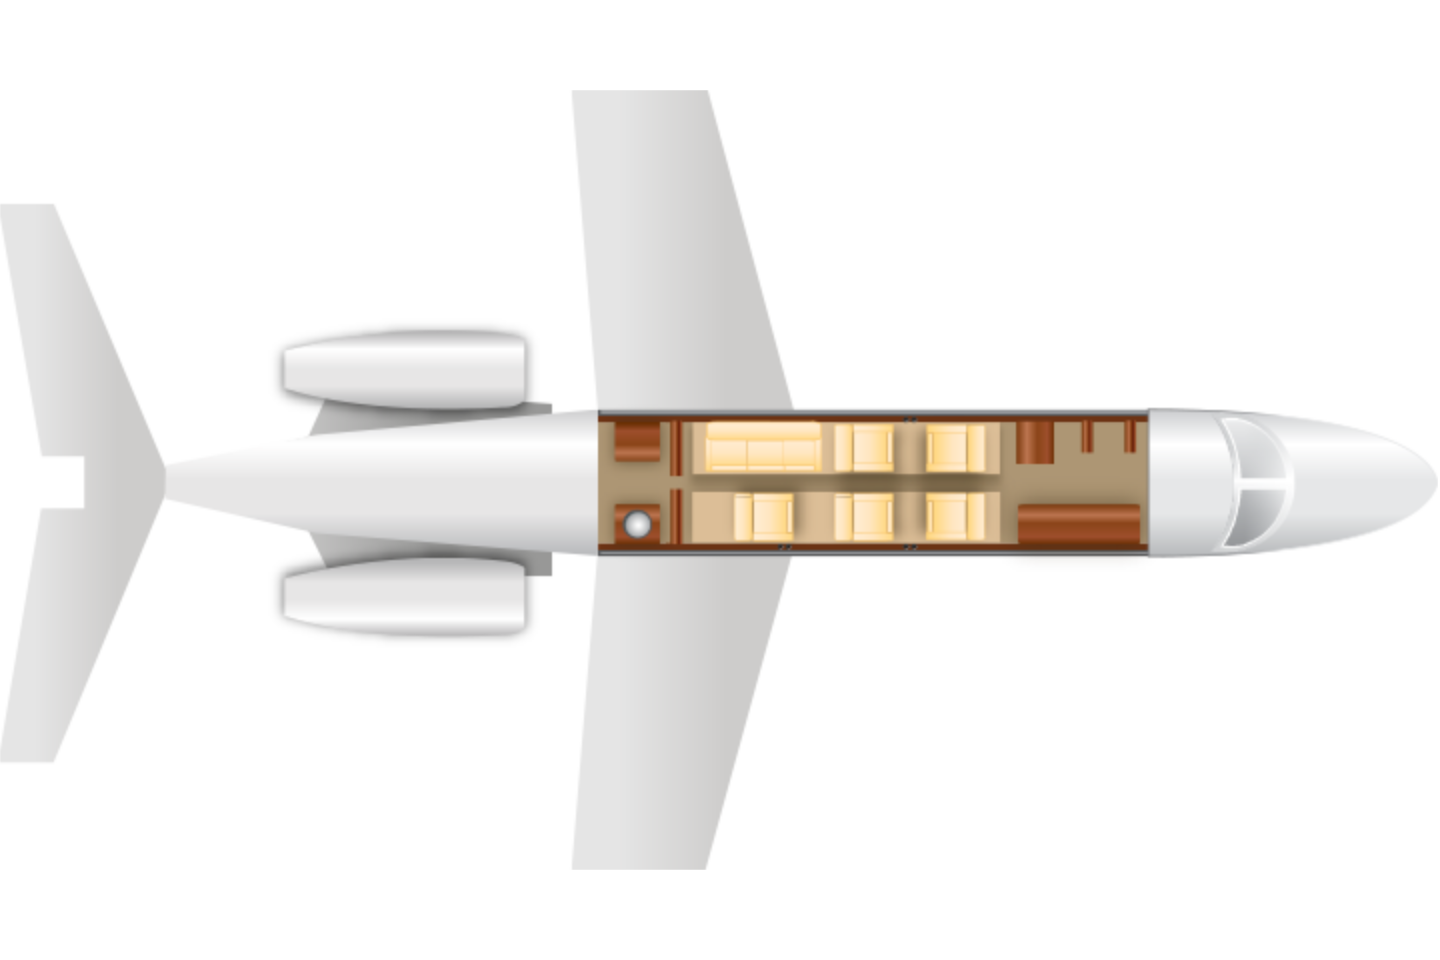 hawker-800-transparent-1412620637.png Floor Plan View